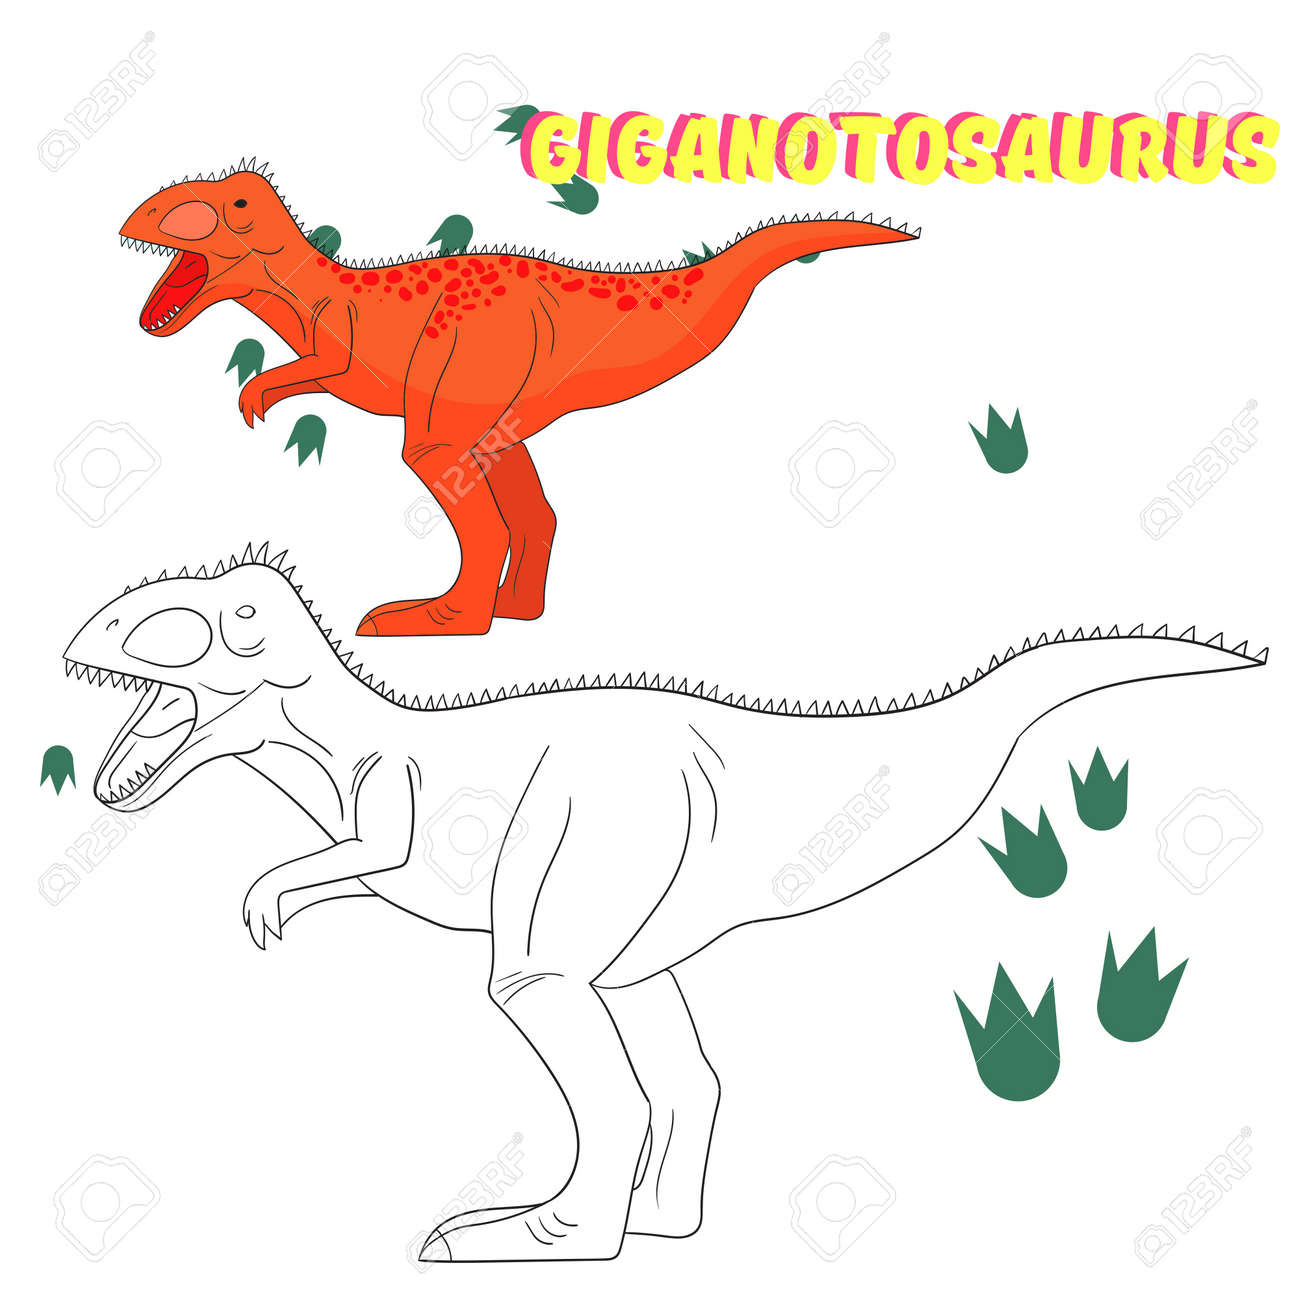 Educational Game For Children Coloring Book Dinosaur Cartoon Doodle Hand Drawn Vector Illustration Stock